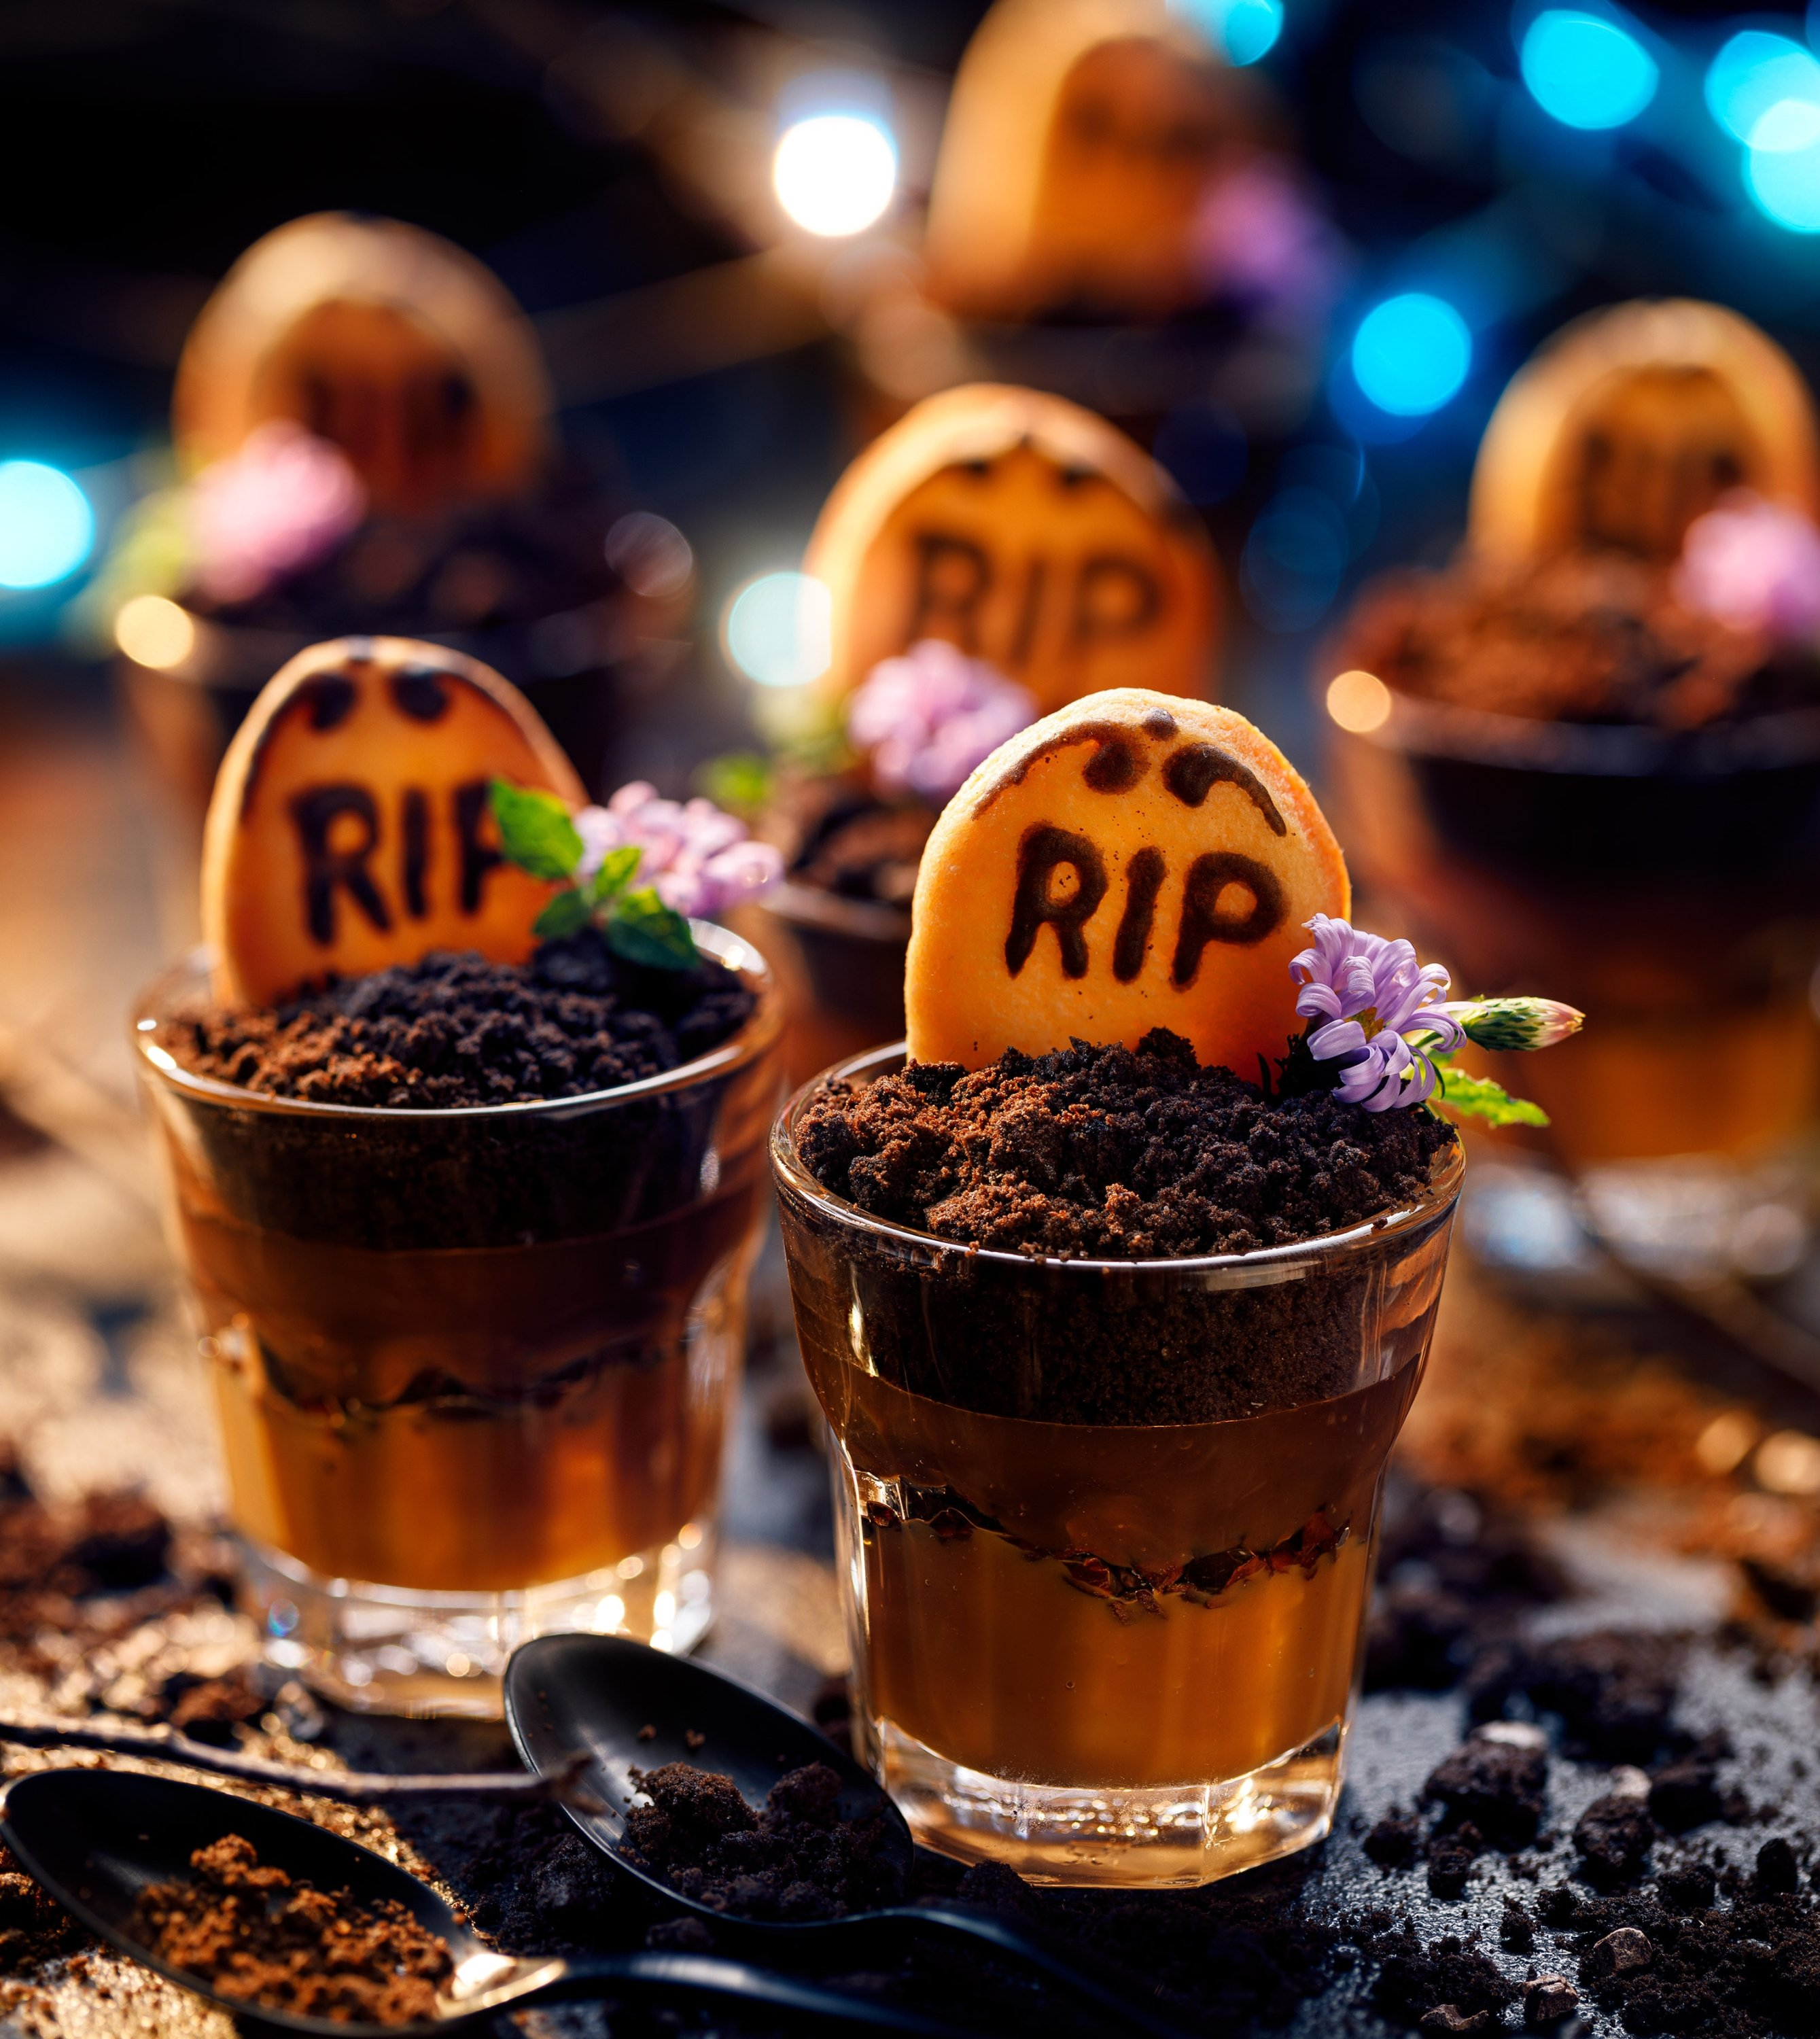 You can decorate your graveyard cookie cups with sprinkles, Oreos or edible flowers. (Shutterstock Photo)